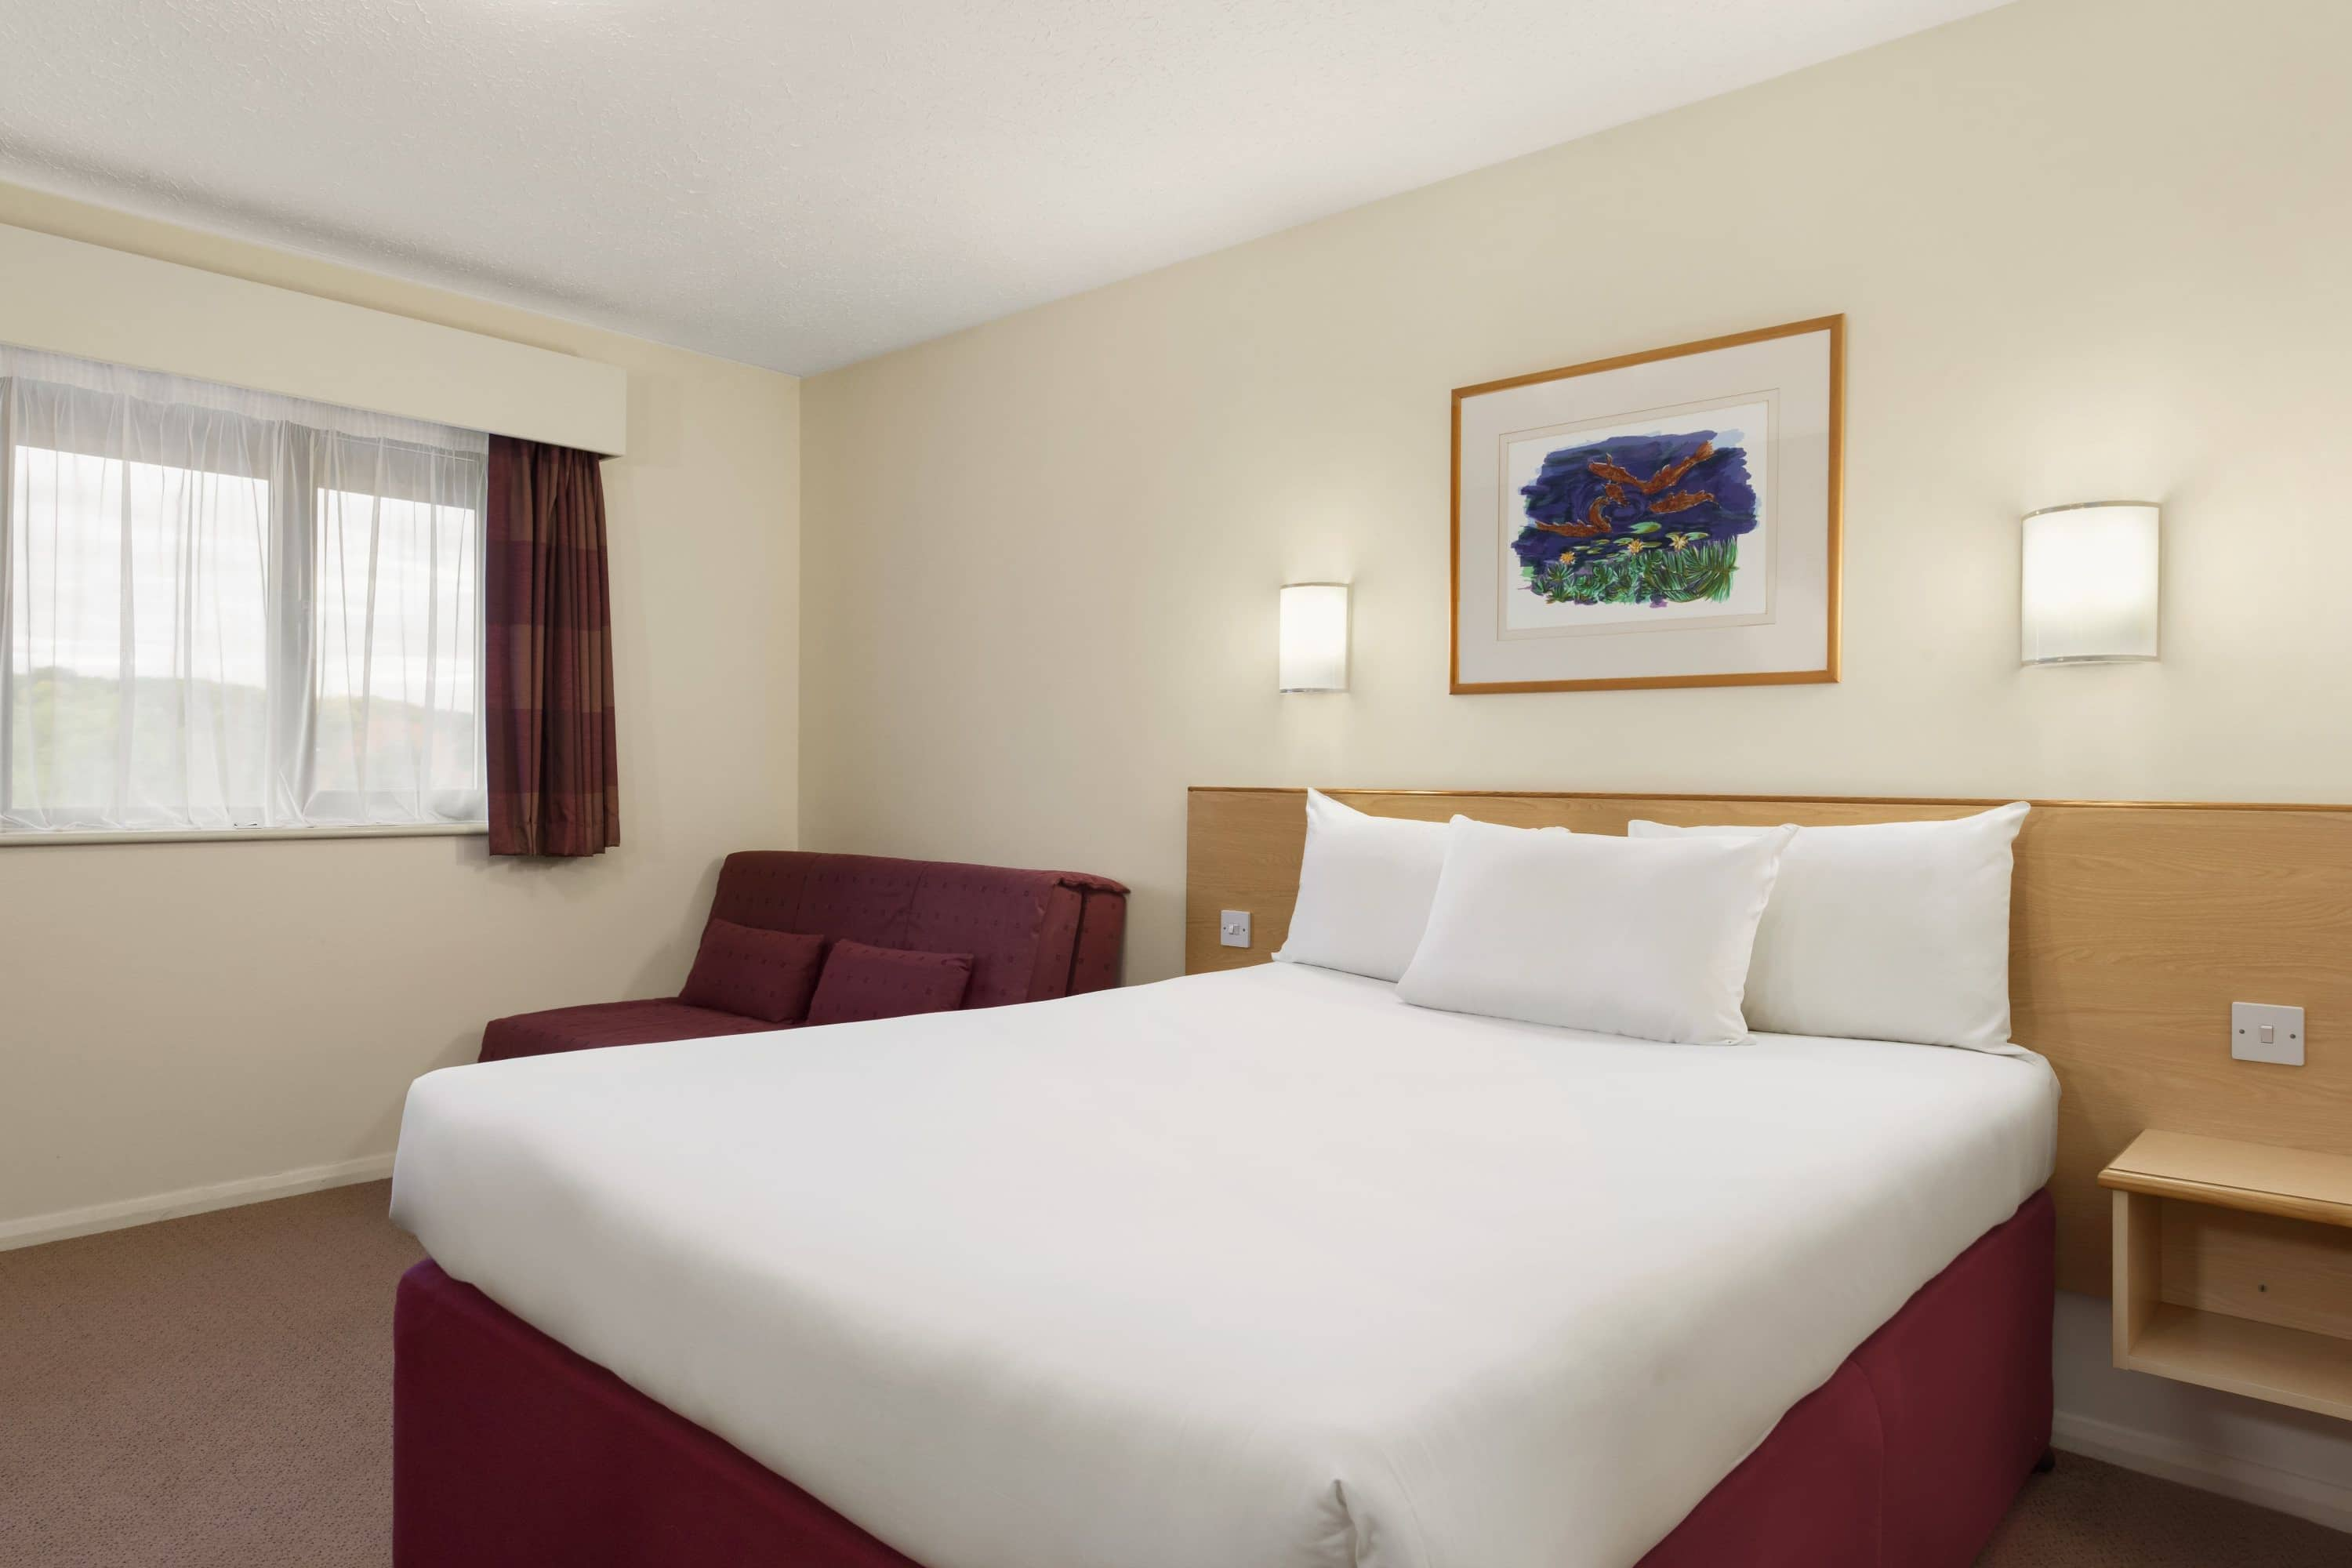 Guest room at the Days Inn Warwick South M40 in Warwickshire, Other than US/Canada